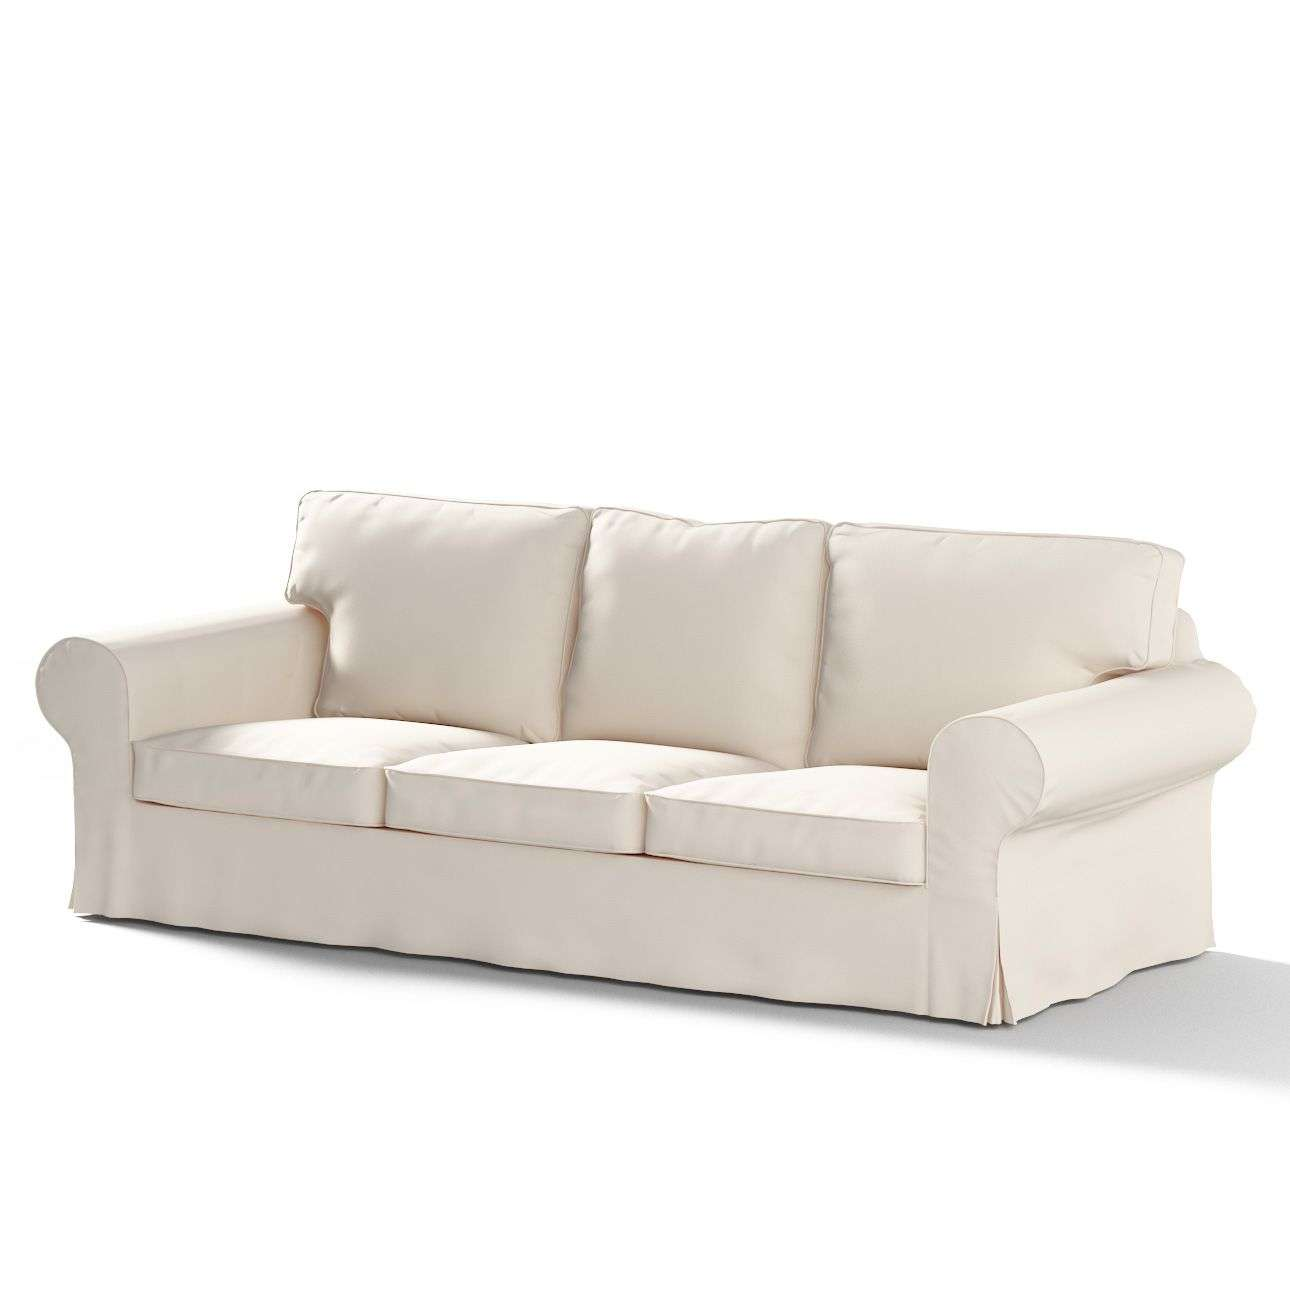 Ikea ektorp sofa and furniture covers Bed couches for sale